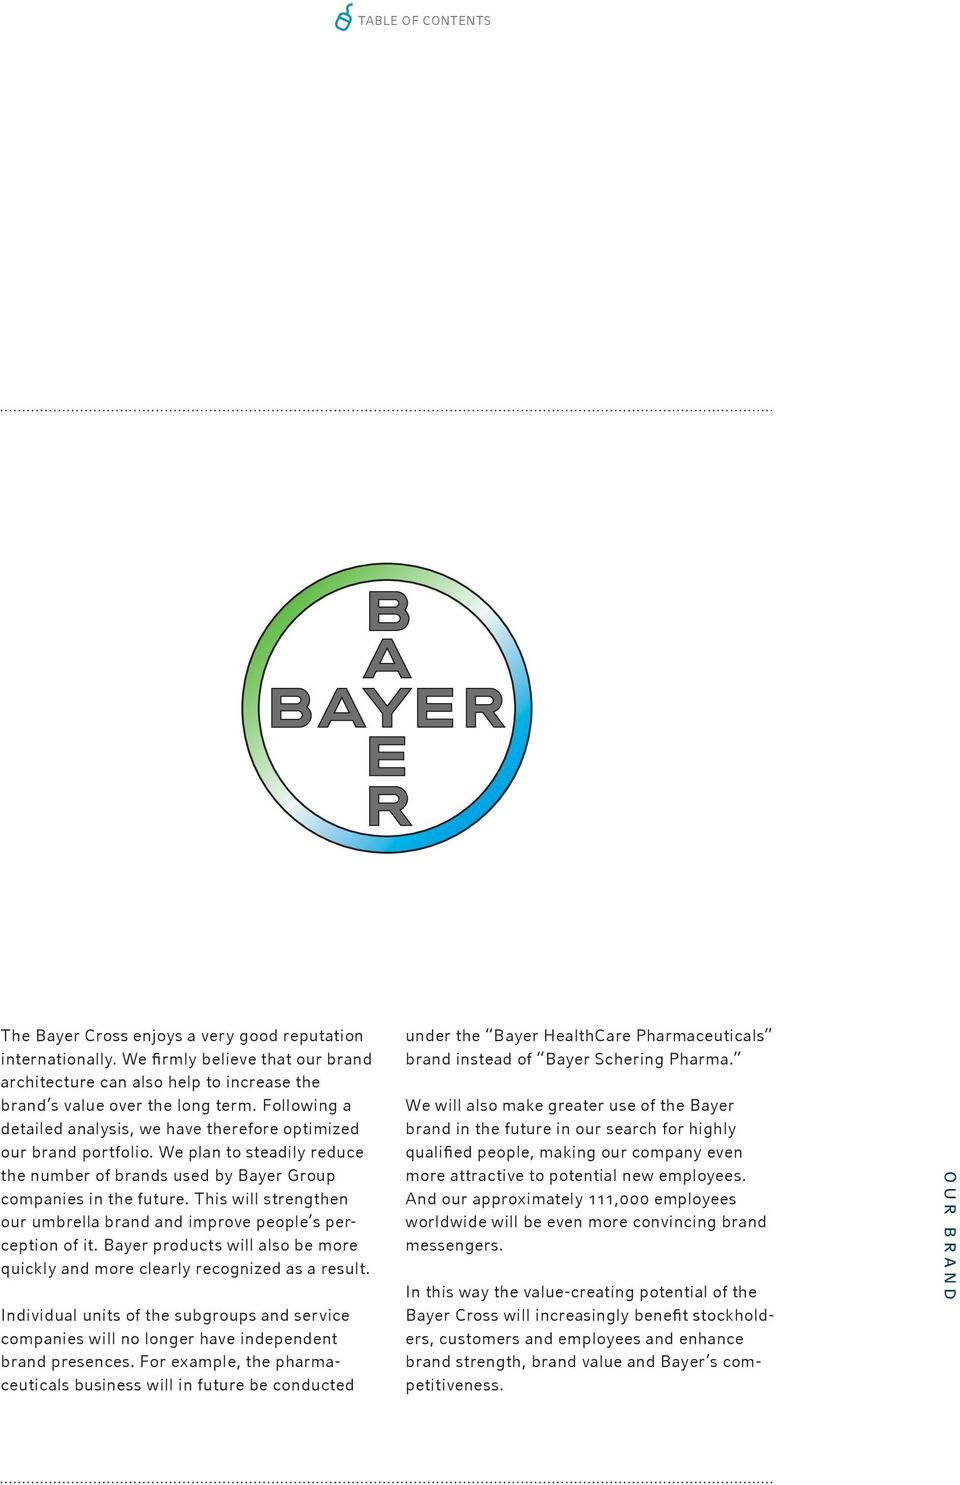 This will strengthen our umbrella brand and improve people s perception of it. Bayer products will also be more quickly and more clearly recognized as a result.